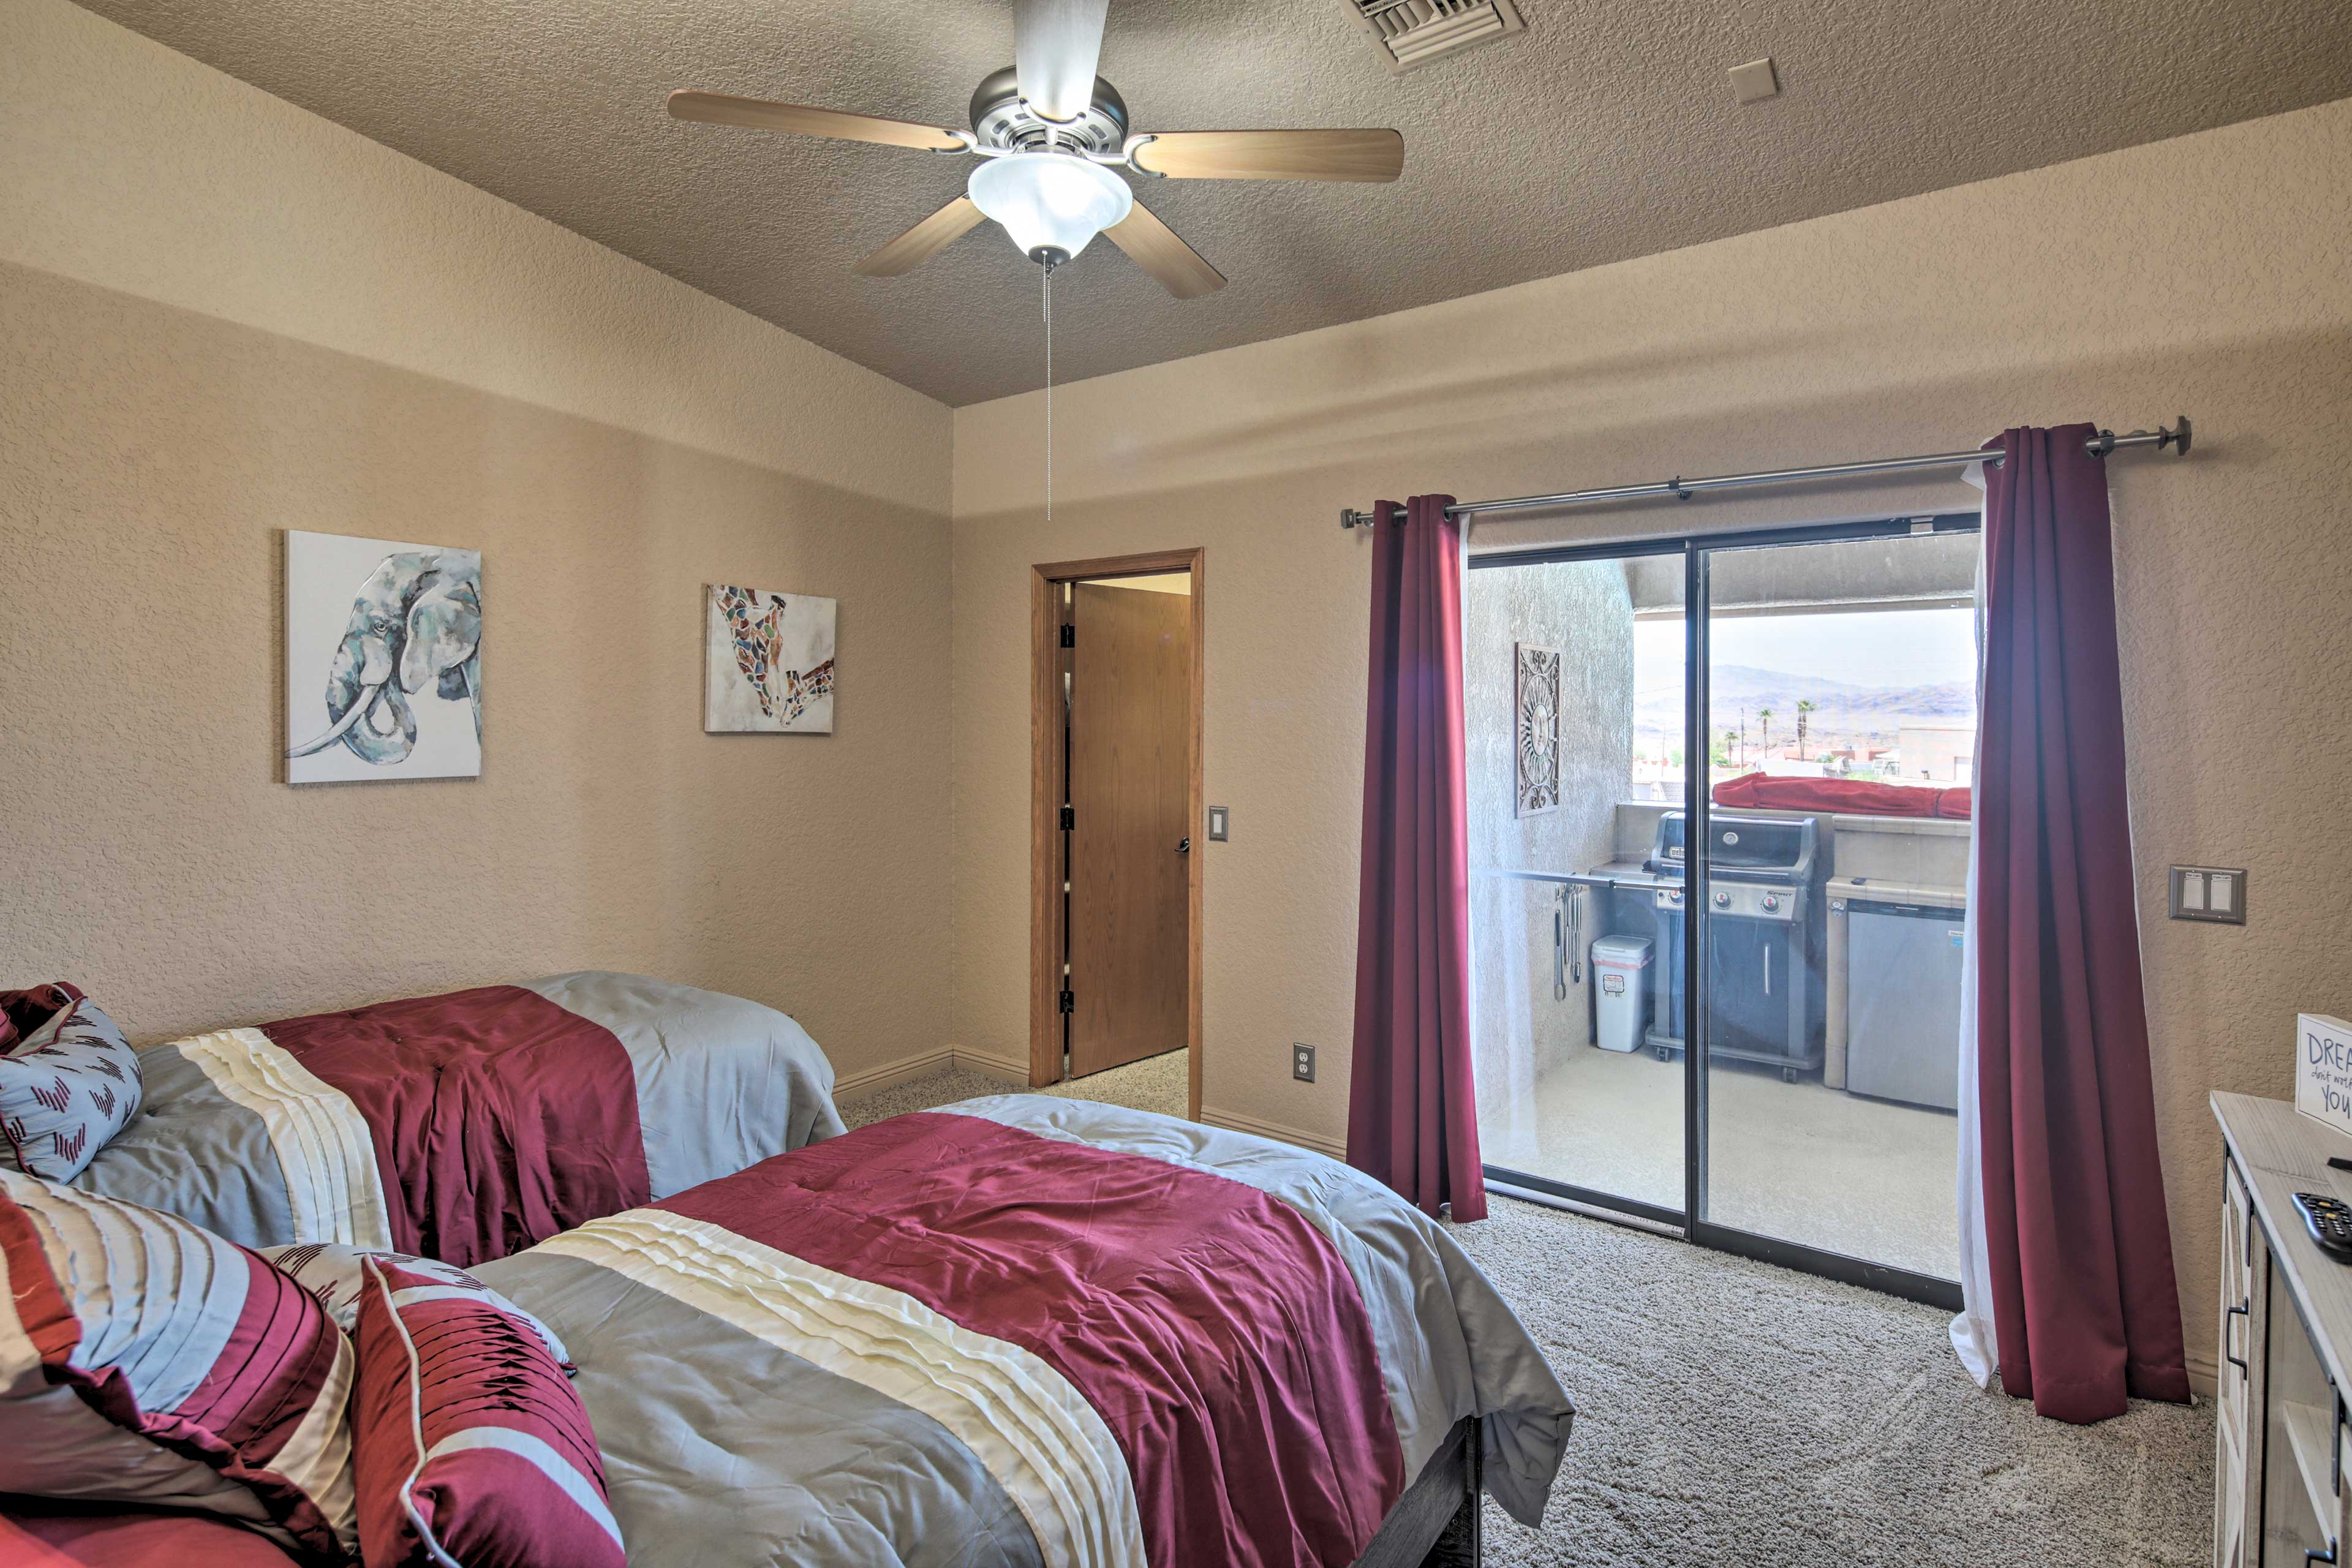 Patio access and a flat-screen TV complete the bedroom.